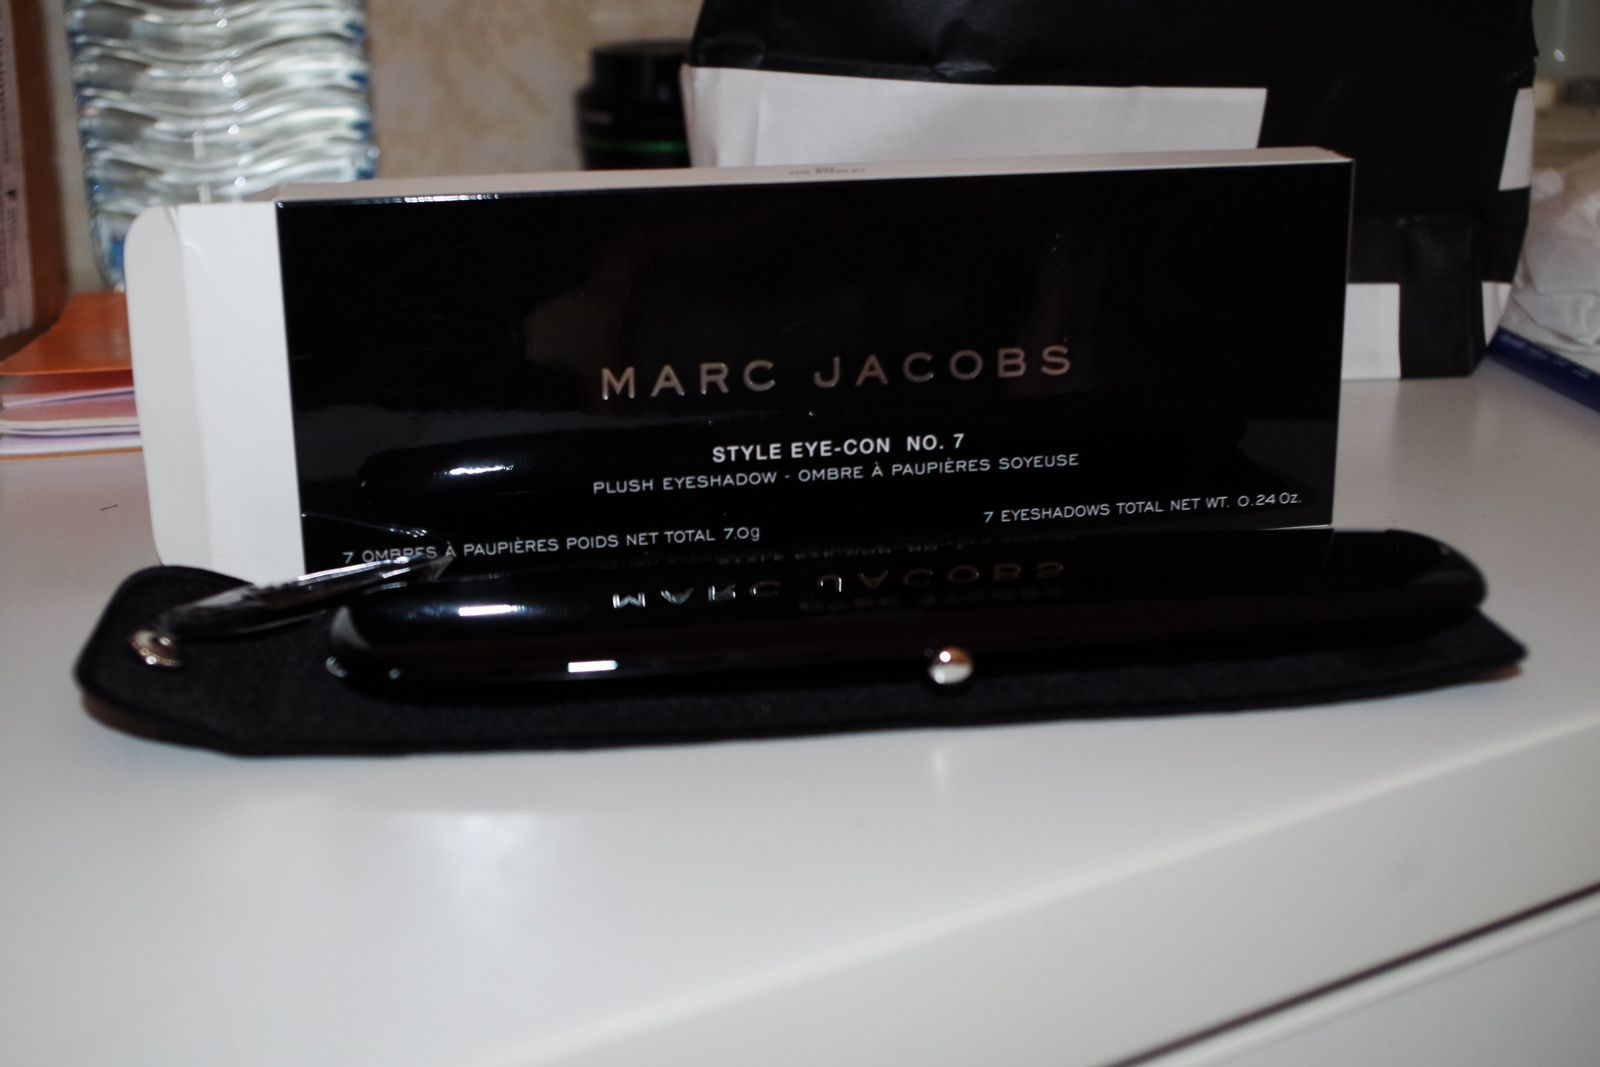 Style Eye-Con - The Starlet - Marc Jacobs Beauty ma palette du moment